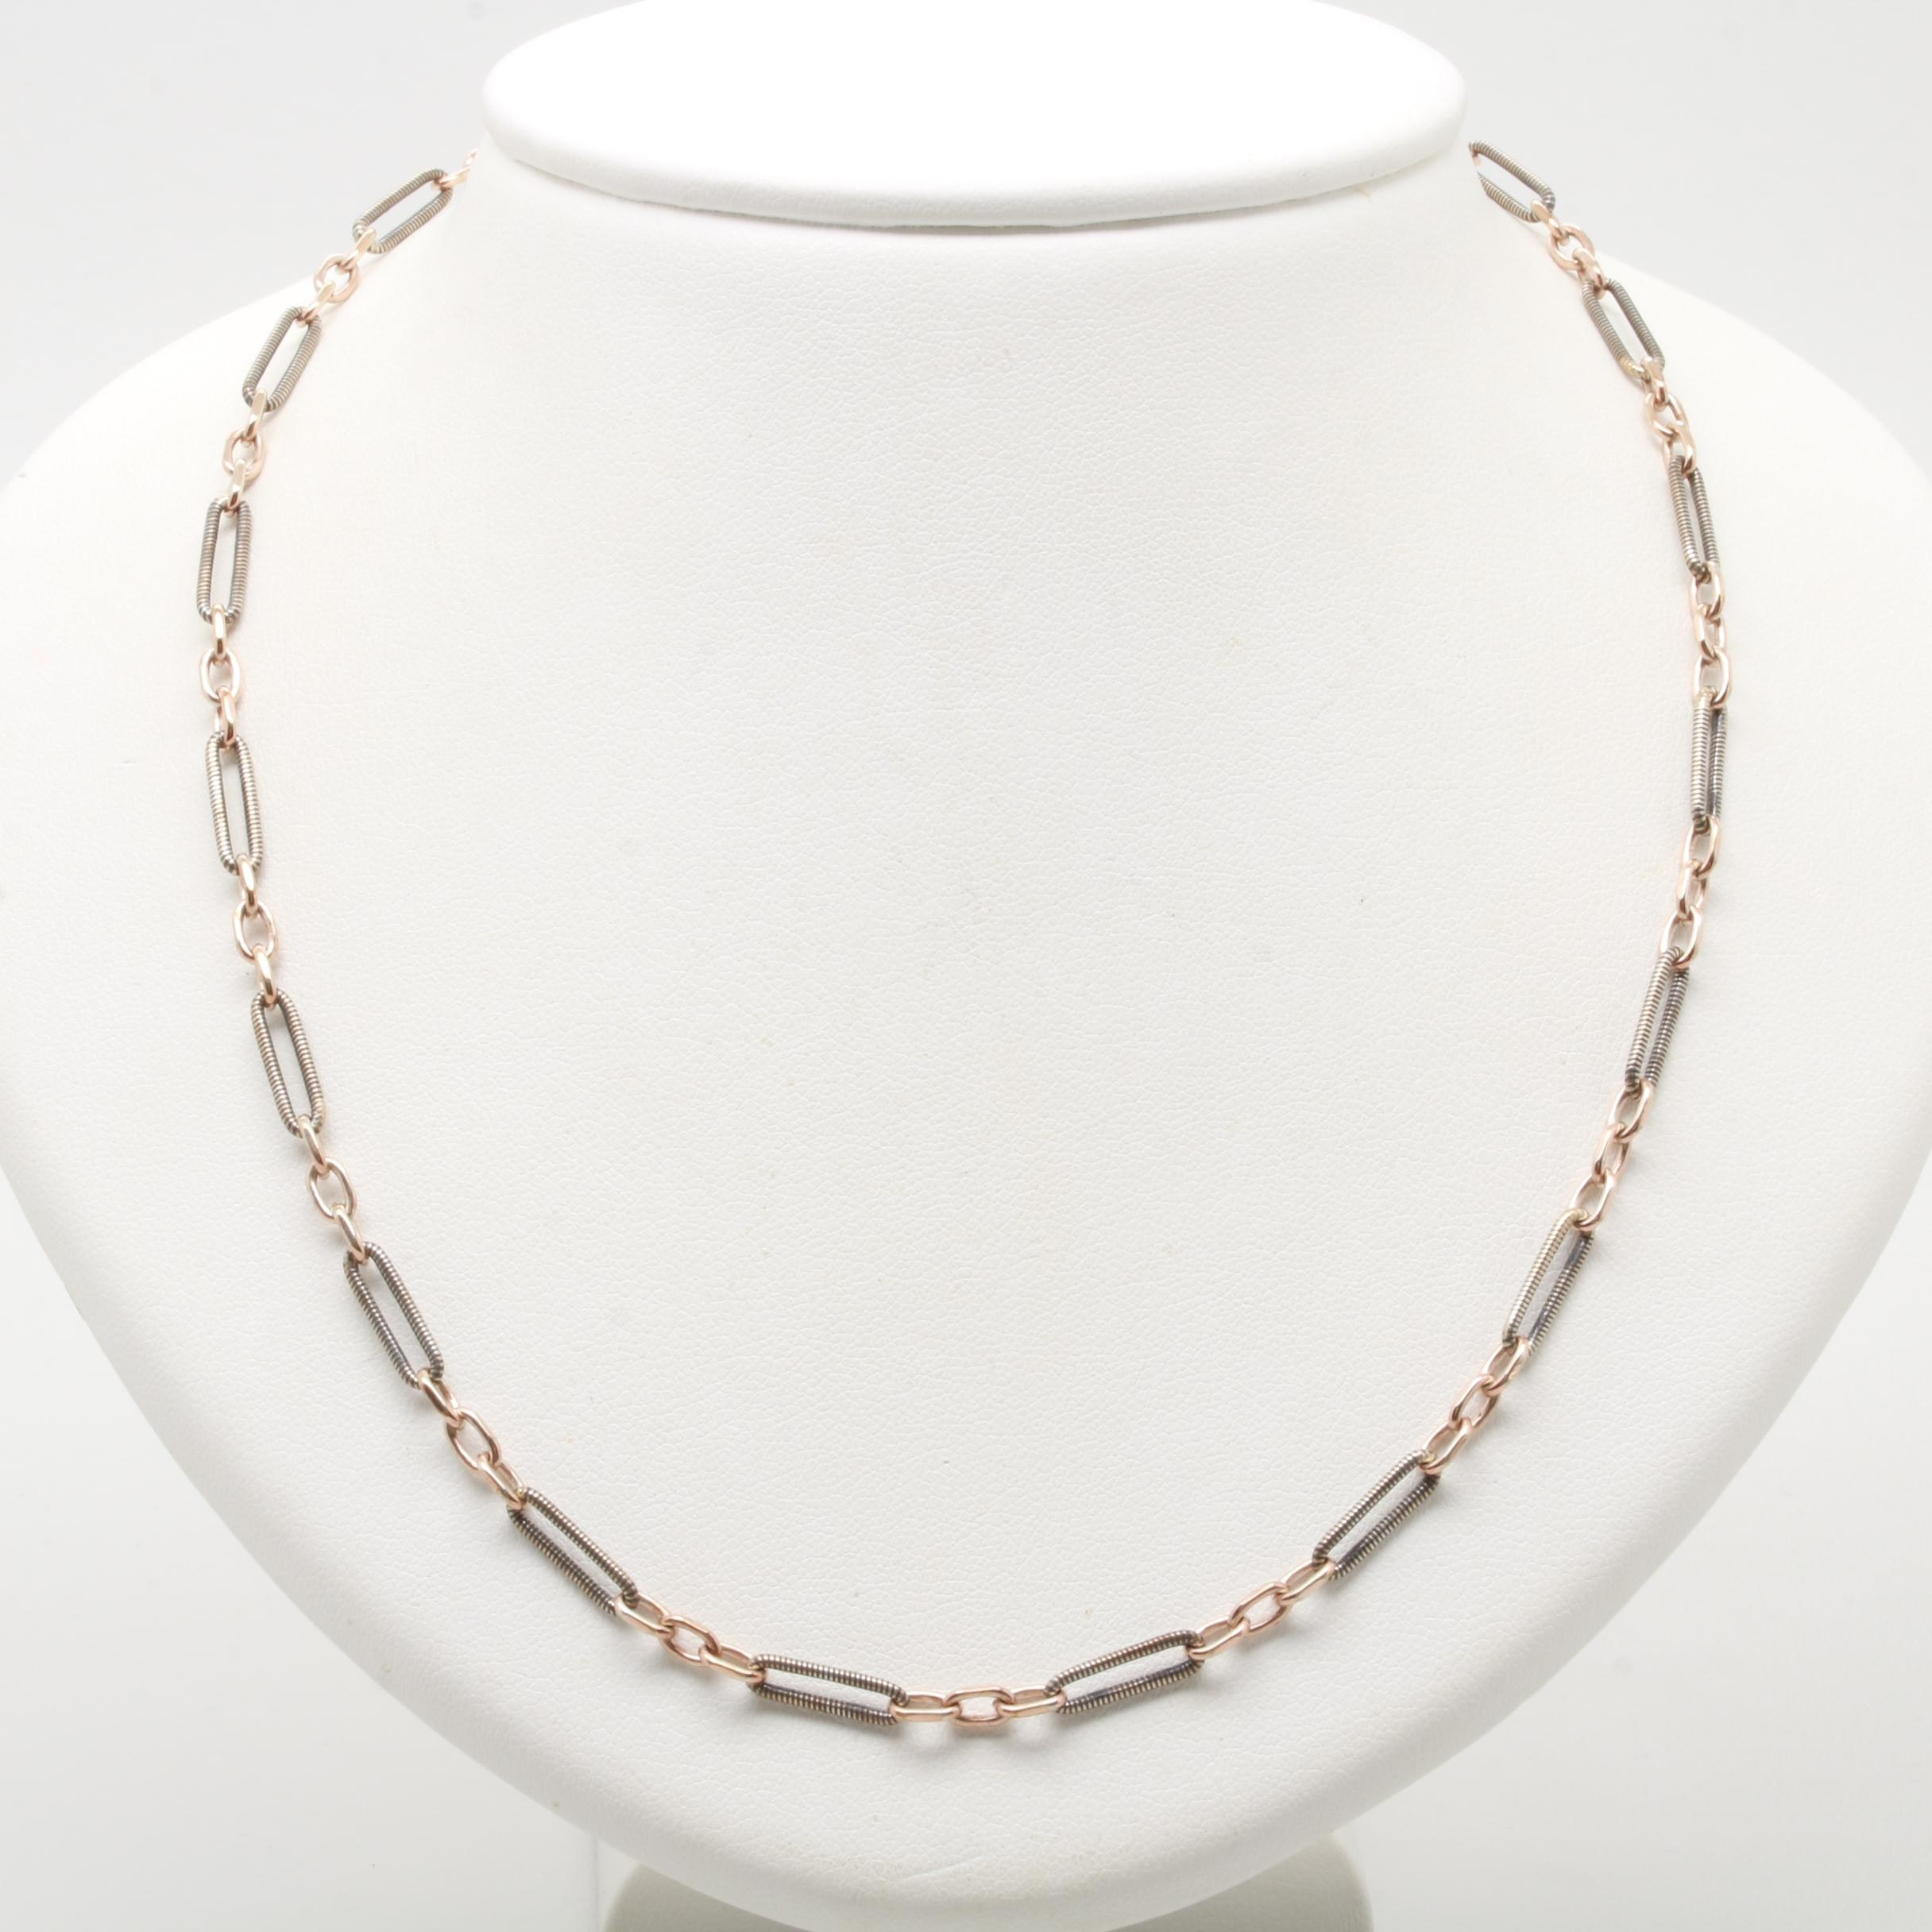 Sterling Silver and Base Metal Chain Link Necklace